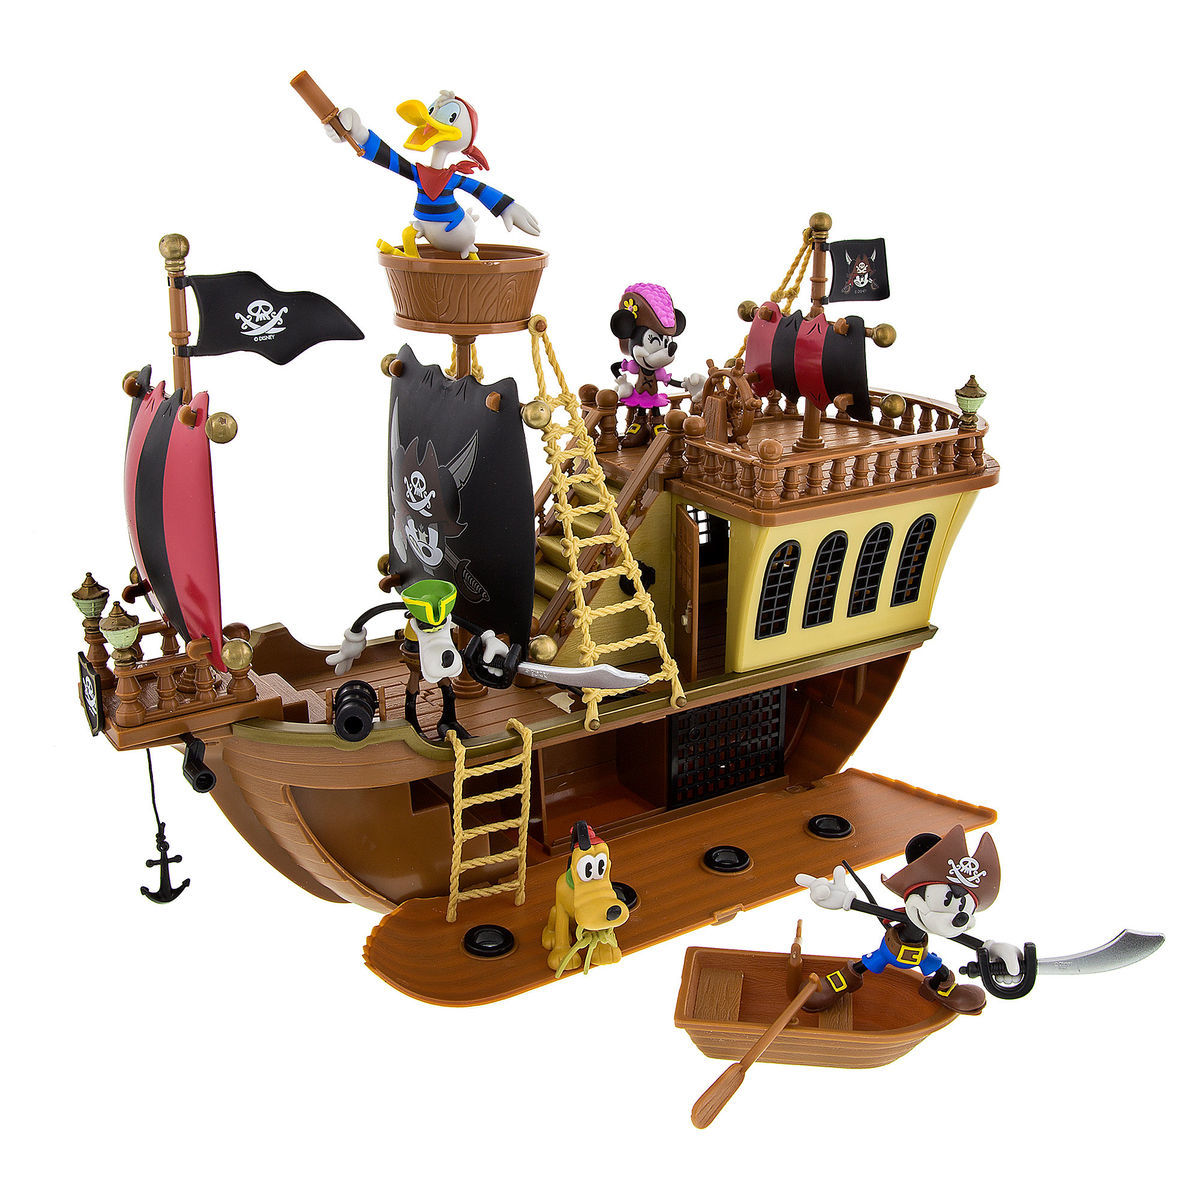 Mickey Mouse Pirates of the Caribbean Pirate Ship Playset | shopDisney